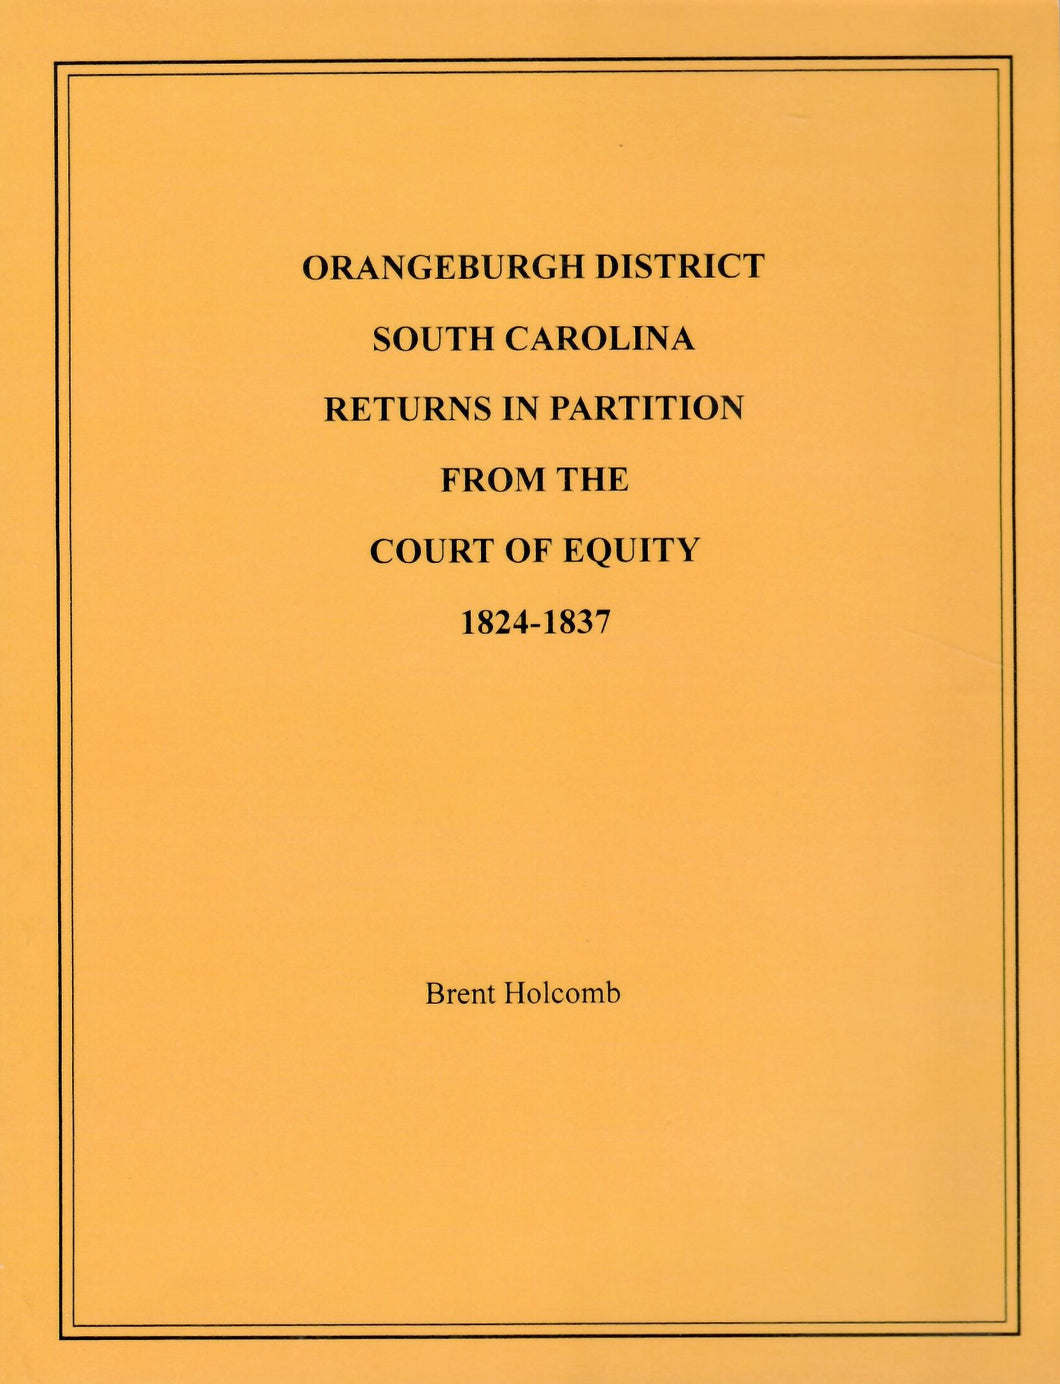 Orangeburgh District, South Carolina, Estate Partitions from the Court of Equity, 1824-1837